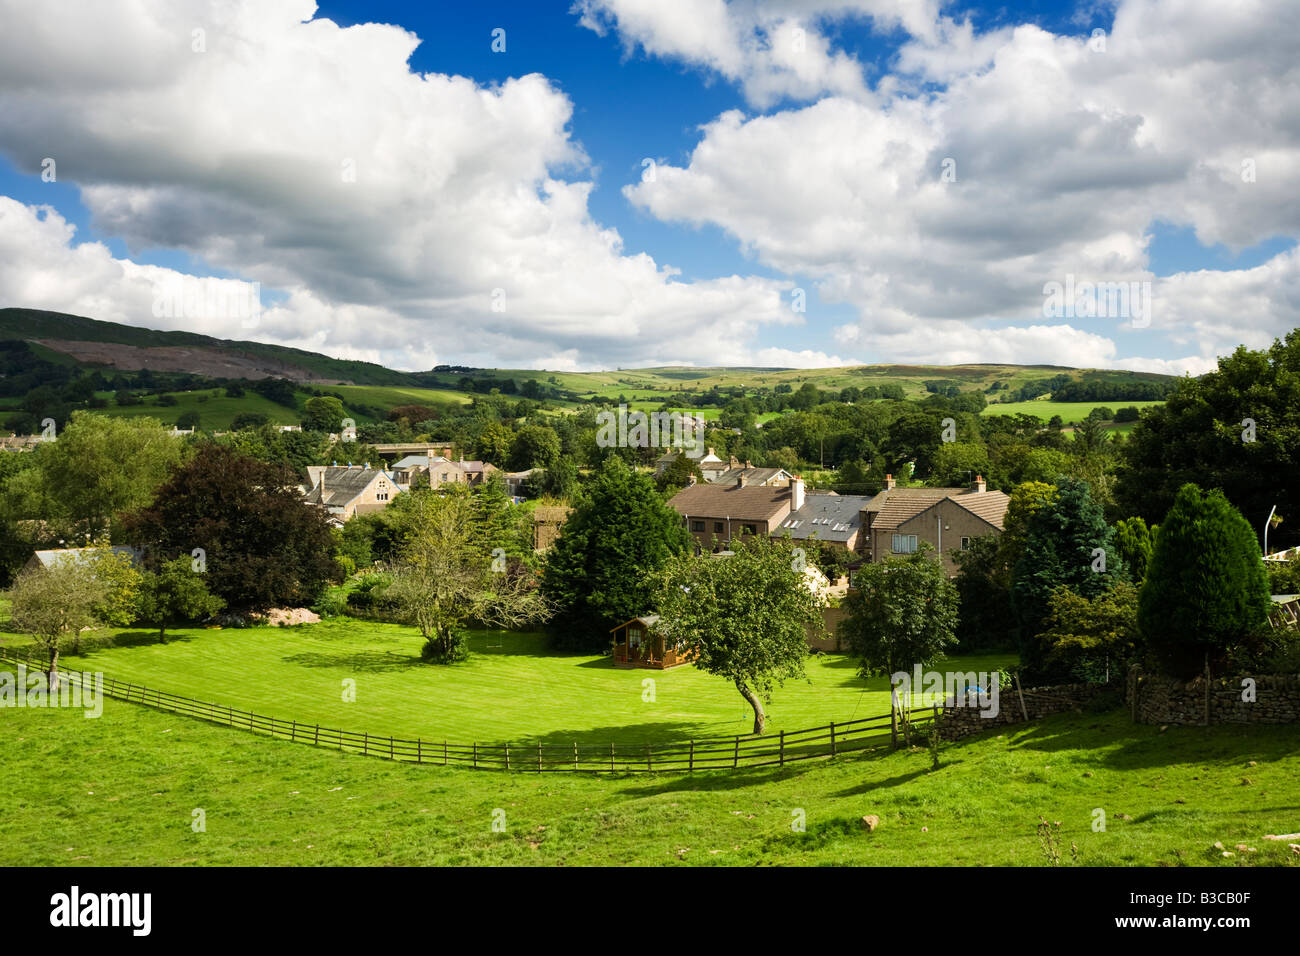 Small town of Brough in Teesdale, Cumbria, England, UK - Stock Image